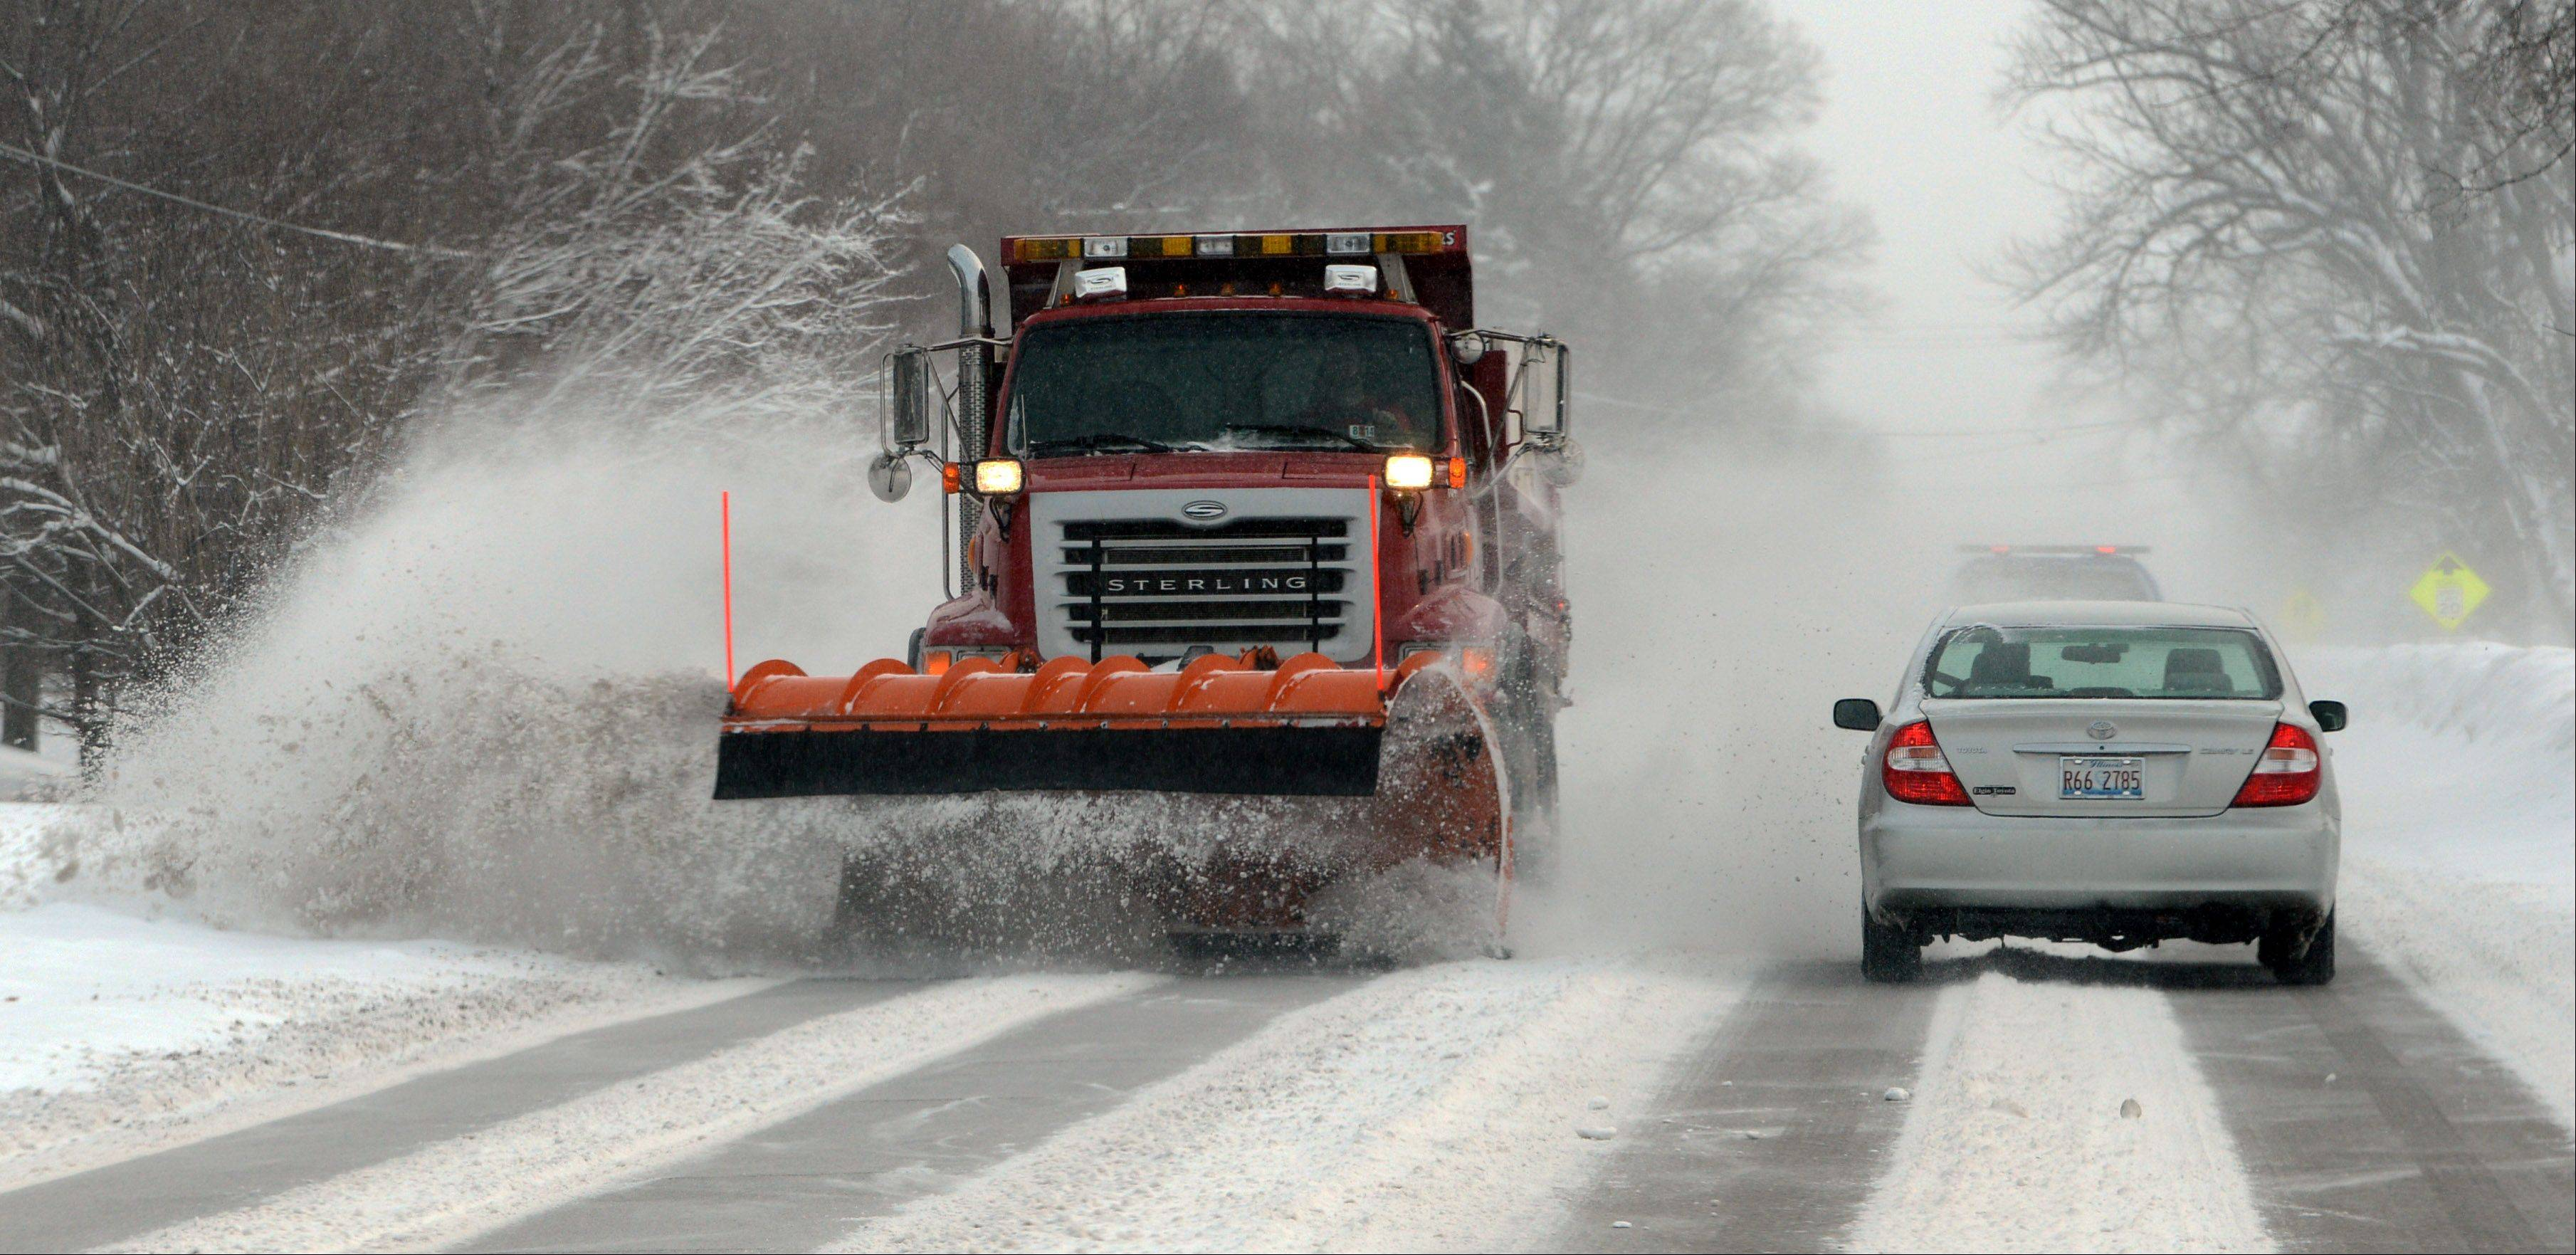 Snow plows were out in force Wednesday morning along Route 176 in Prairie Grove.